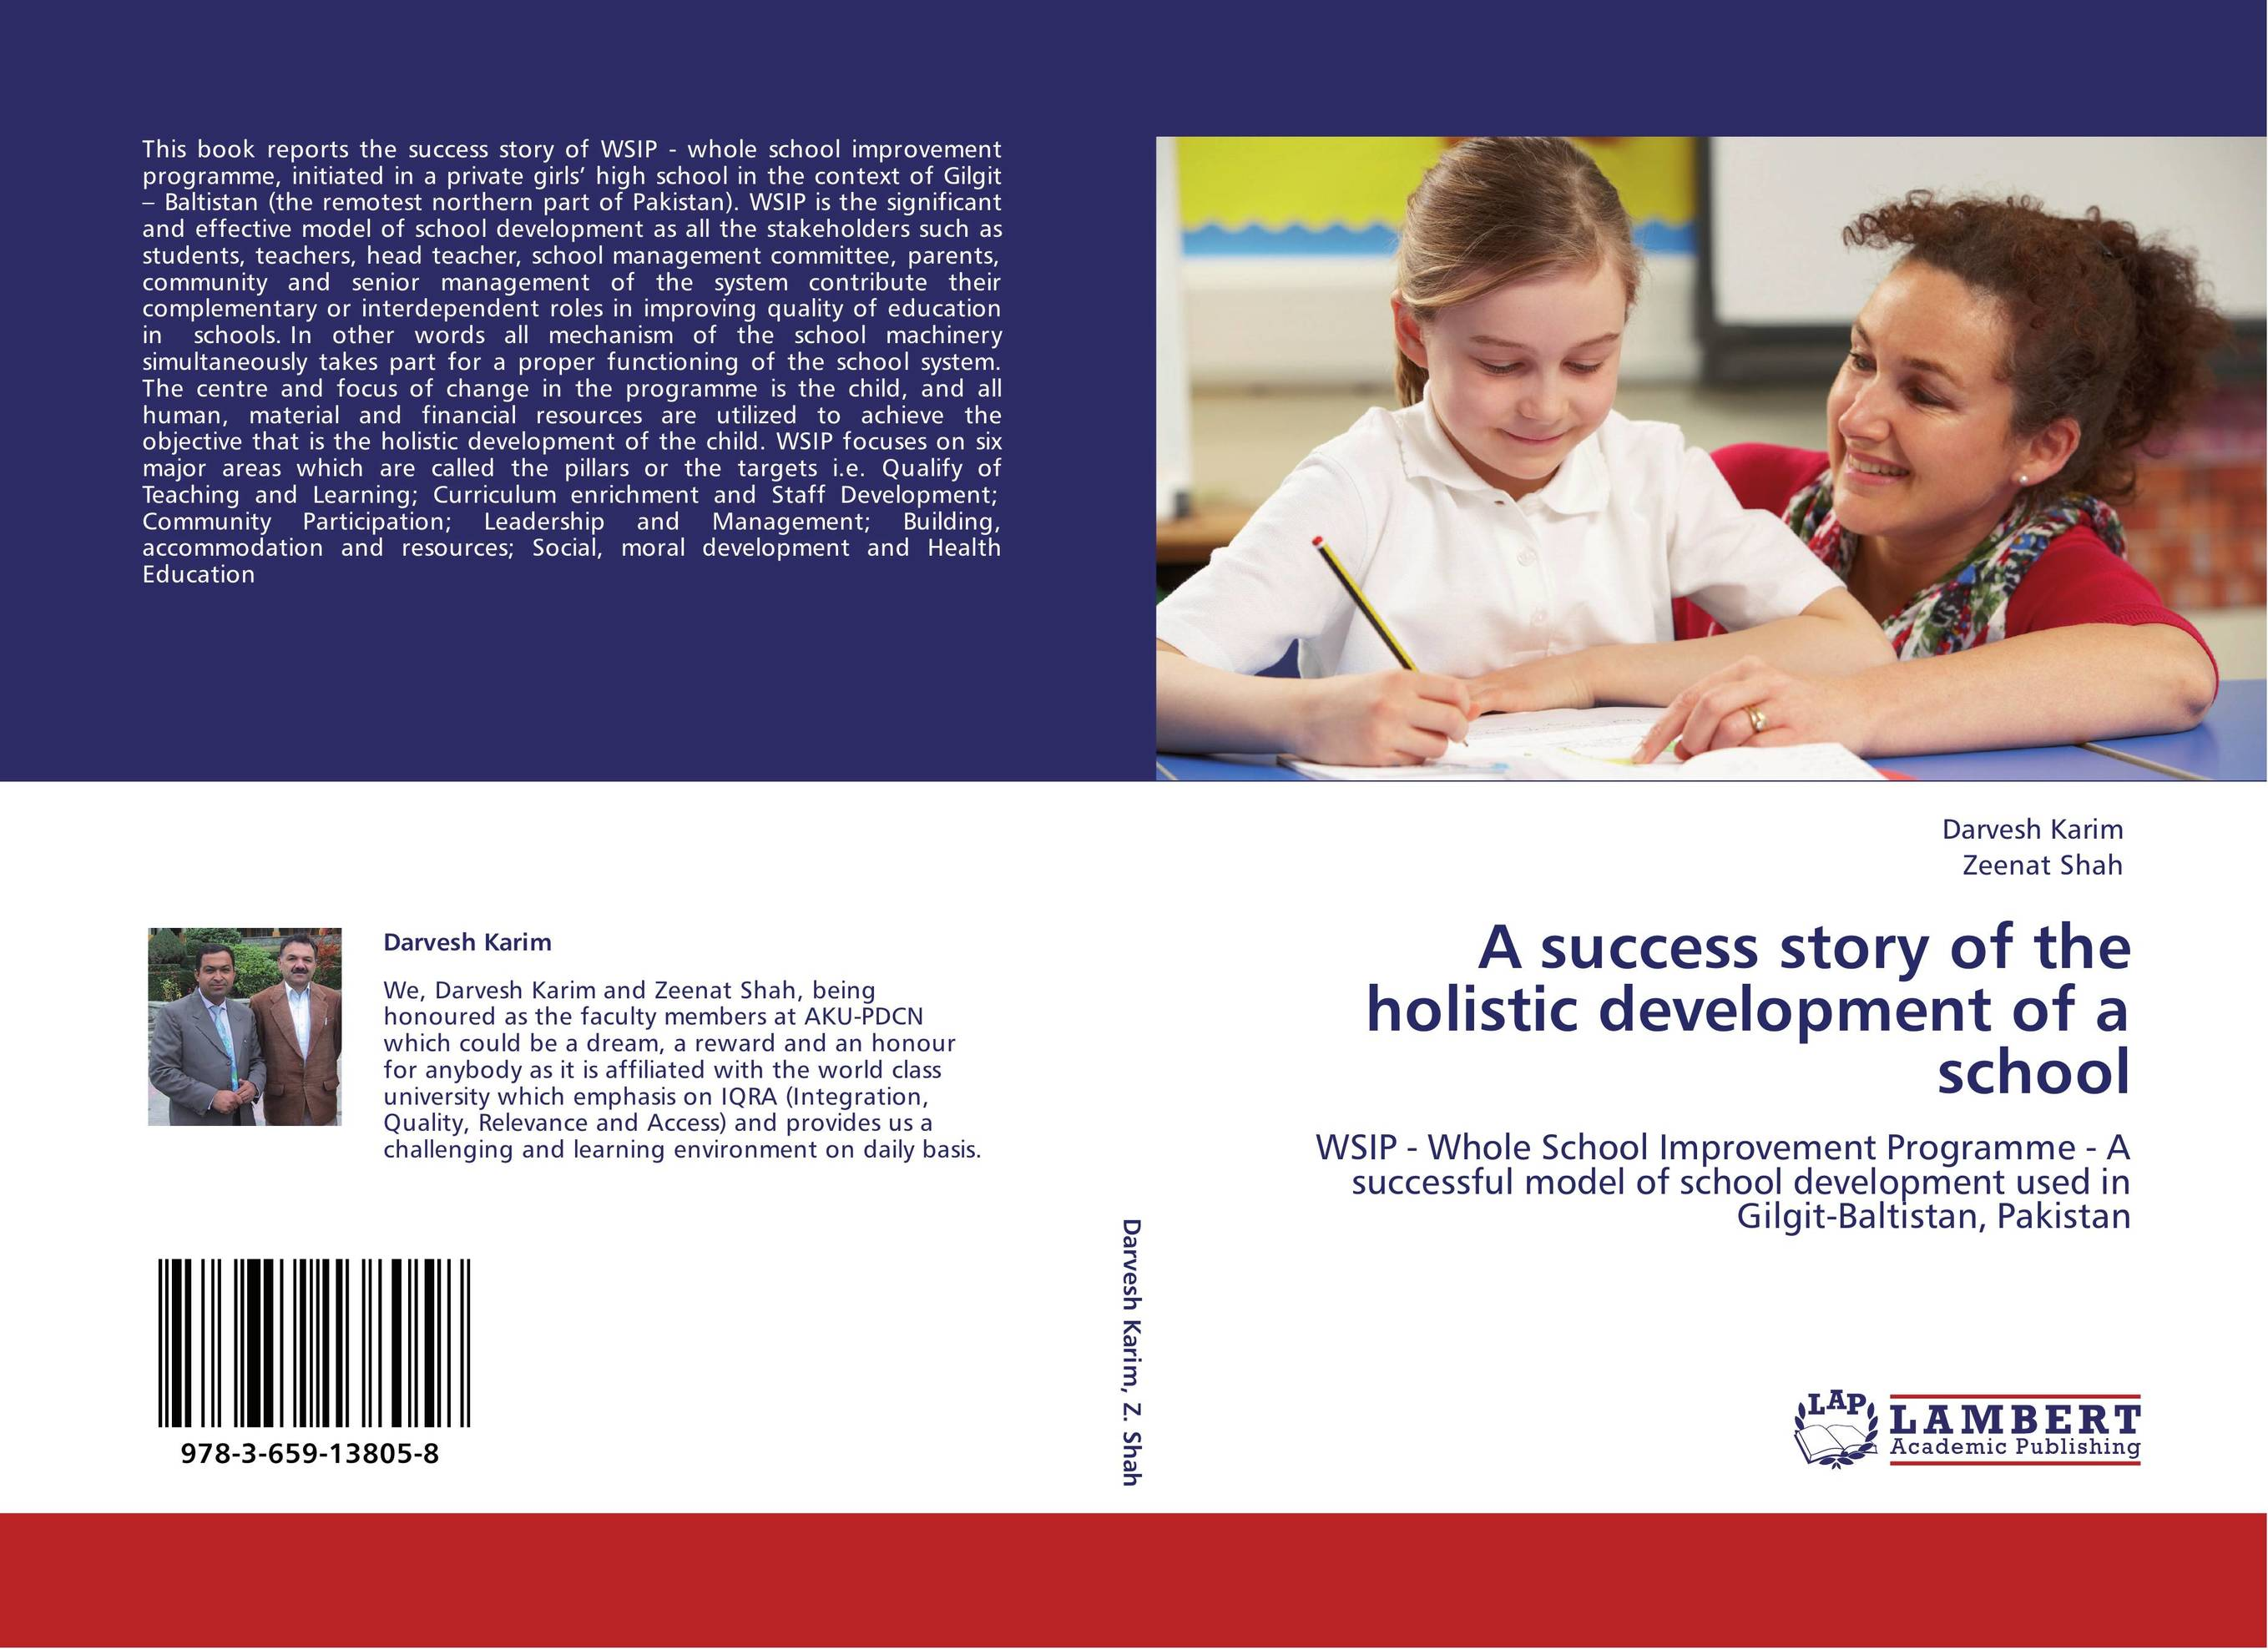 holistic development English sentences with holistic development in context no results, please check your input for typos or set a different source language 29 exact matches 0 similar sentences.